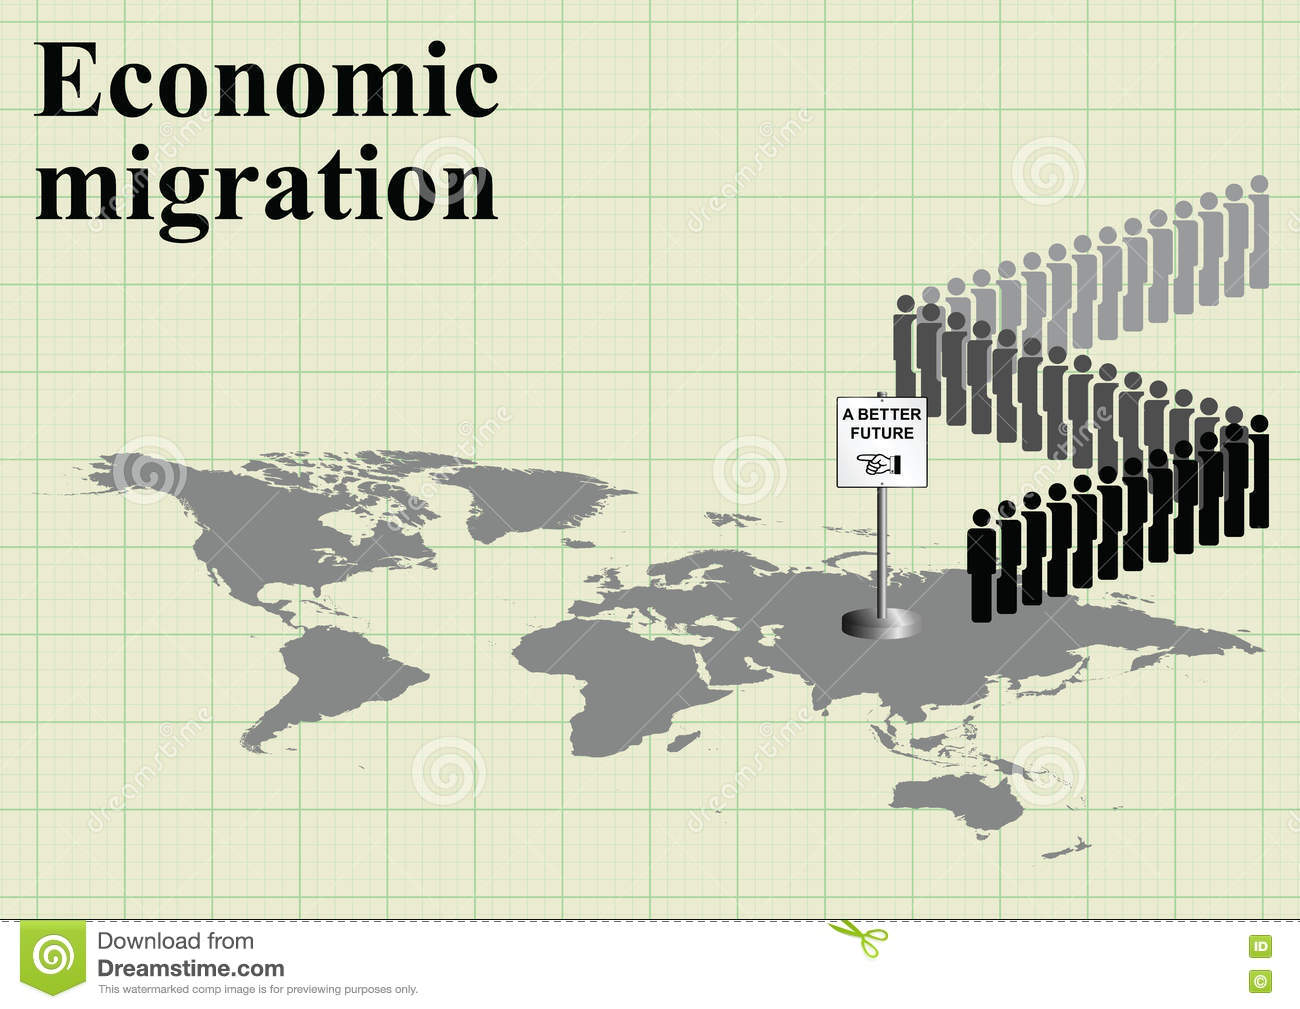 carte conomique du monde de migration illustration de vecteur image 75362682. Black Bedroom Furniture Sets. Home Design Ideas